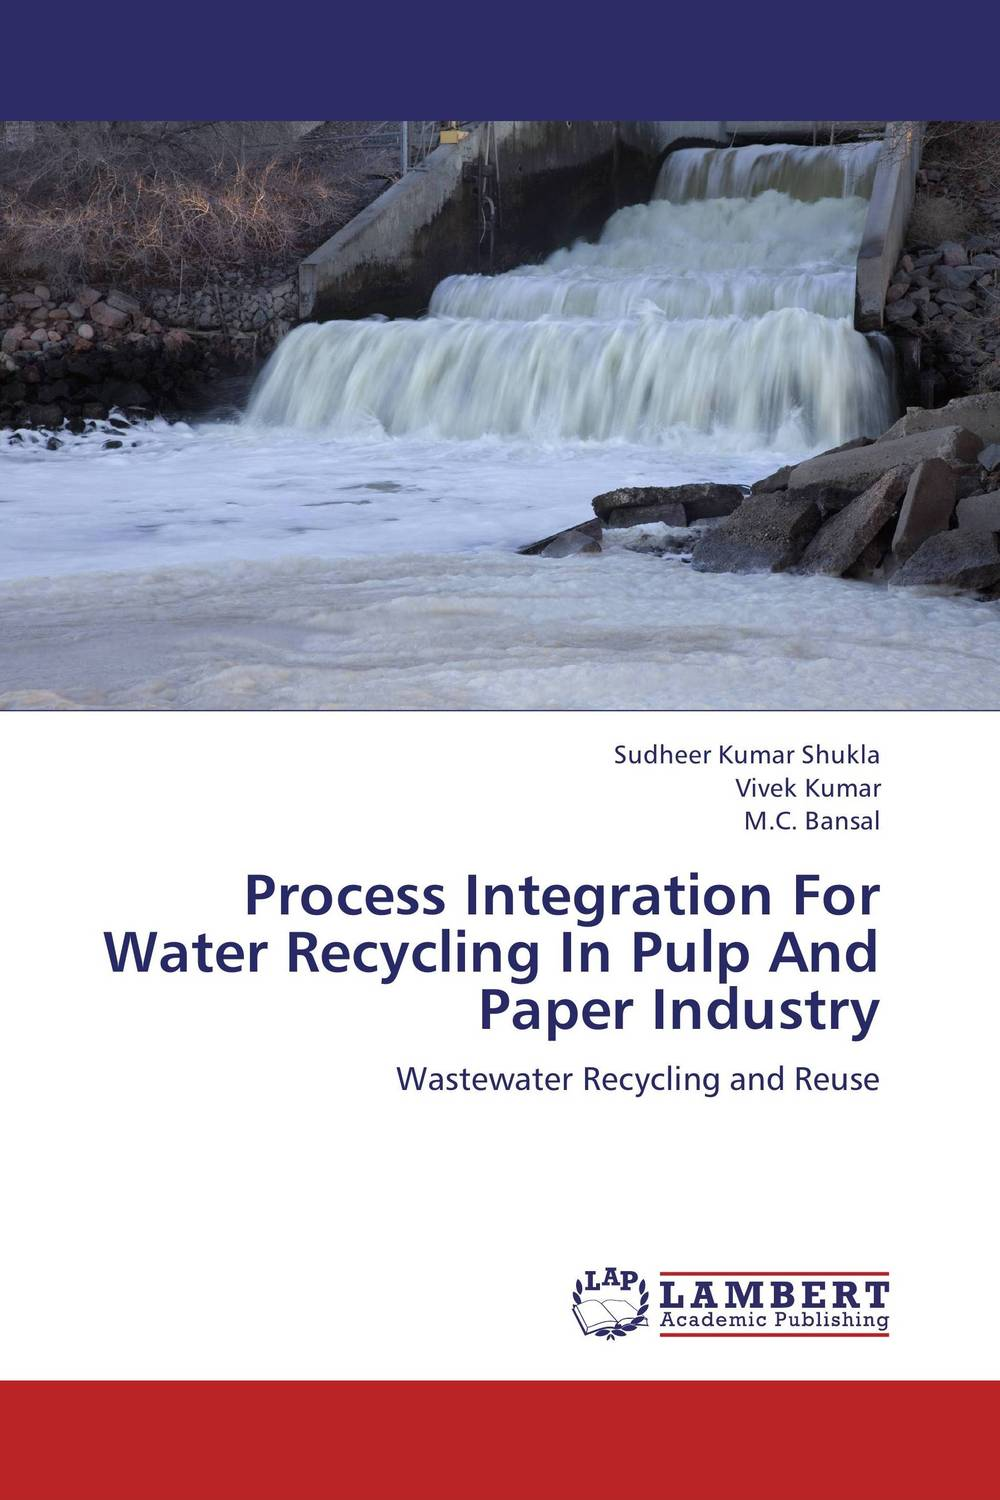 Process Integration For Water Recycling In Pulp And Paper Industry biodegradation of coffee pulp waste by white rotters